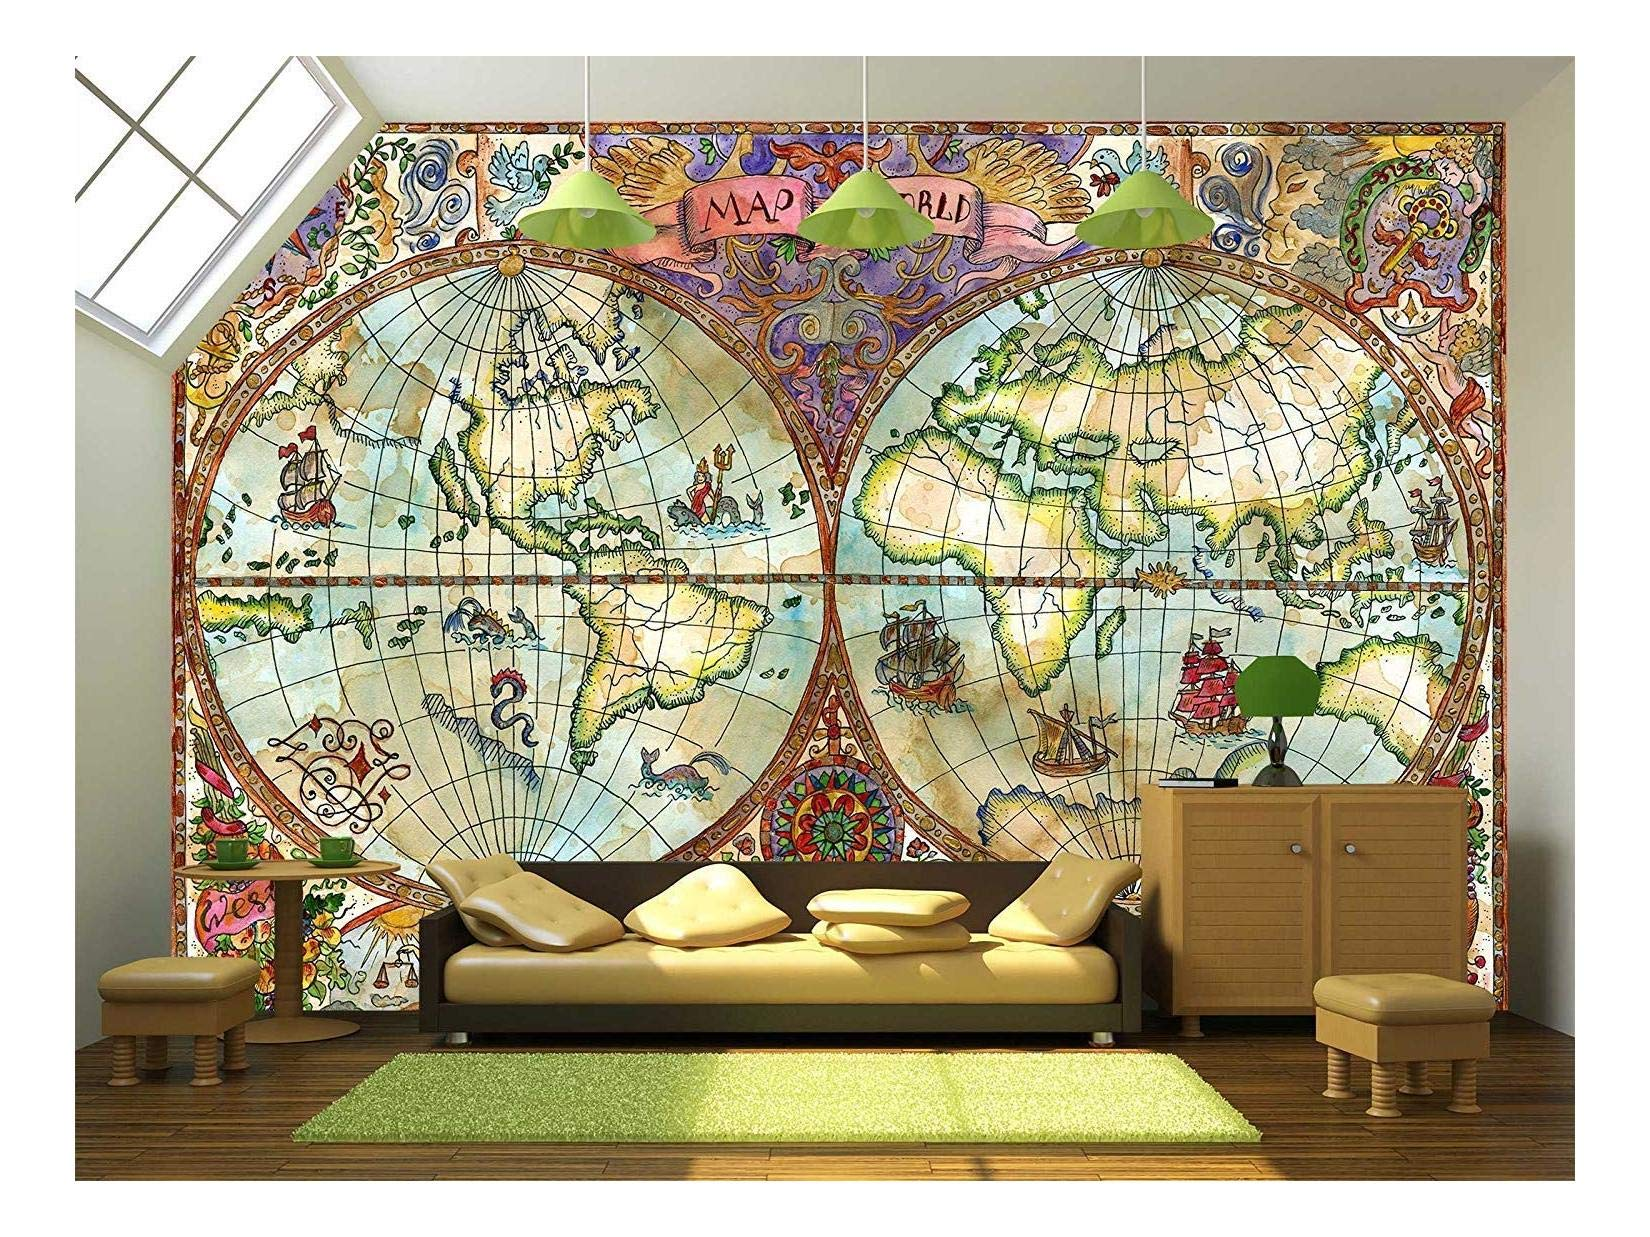 wall26 - Illustration - Vintage Illustration with World Atlas Map on Antique Paper. Pirate Adventures - Removable Wall Mural | Self-Adhesive Large Wallpaper - 100x144 inches by wall26 (Image #1)